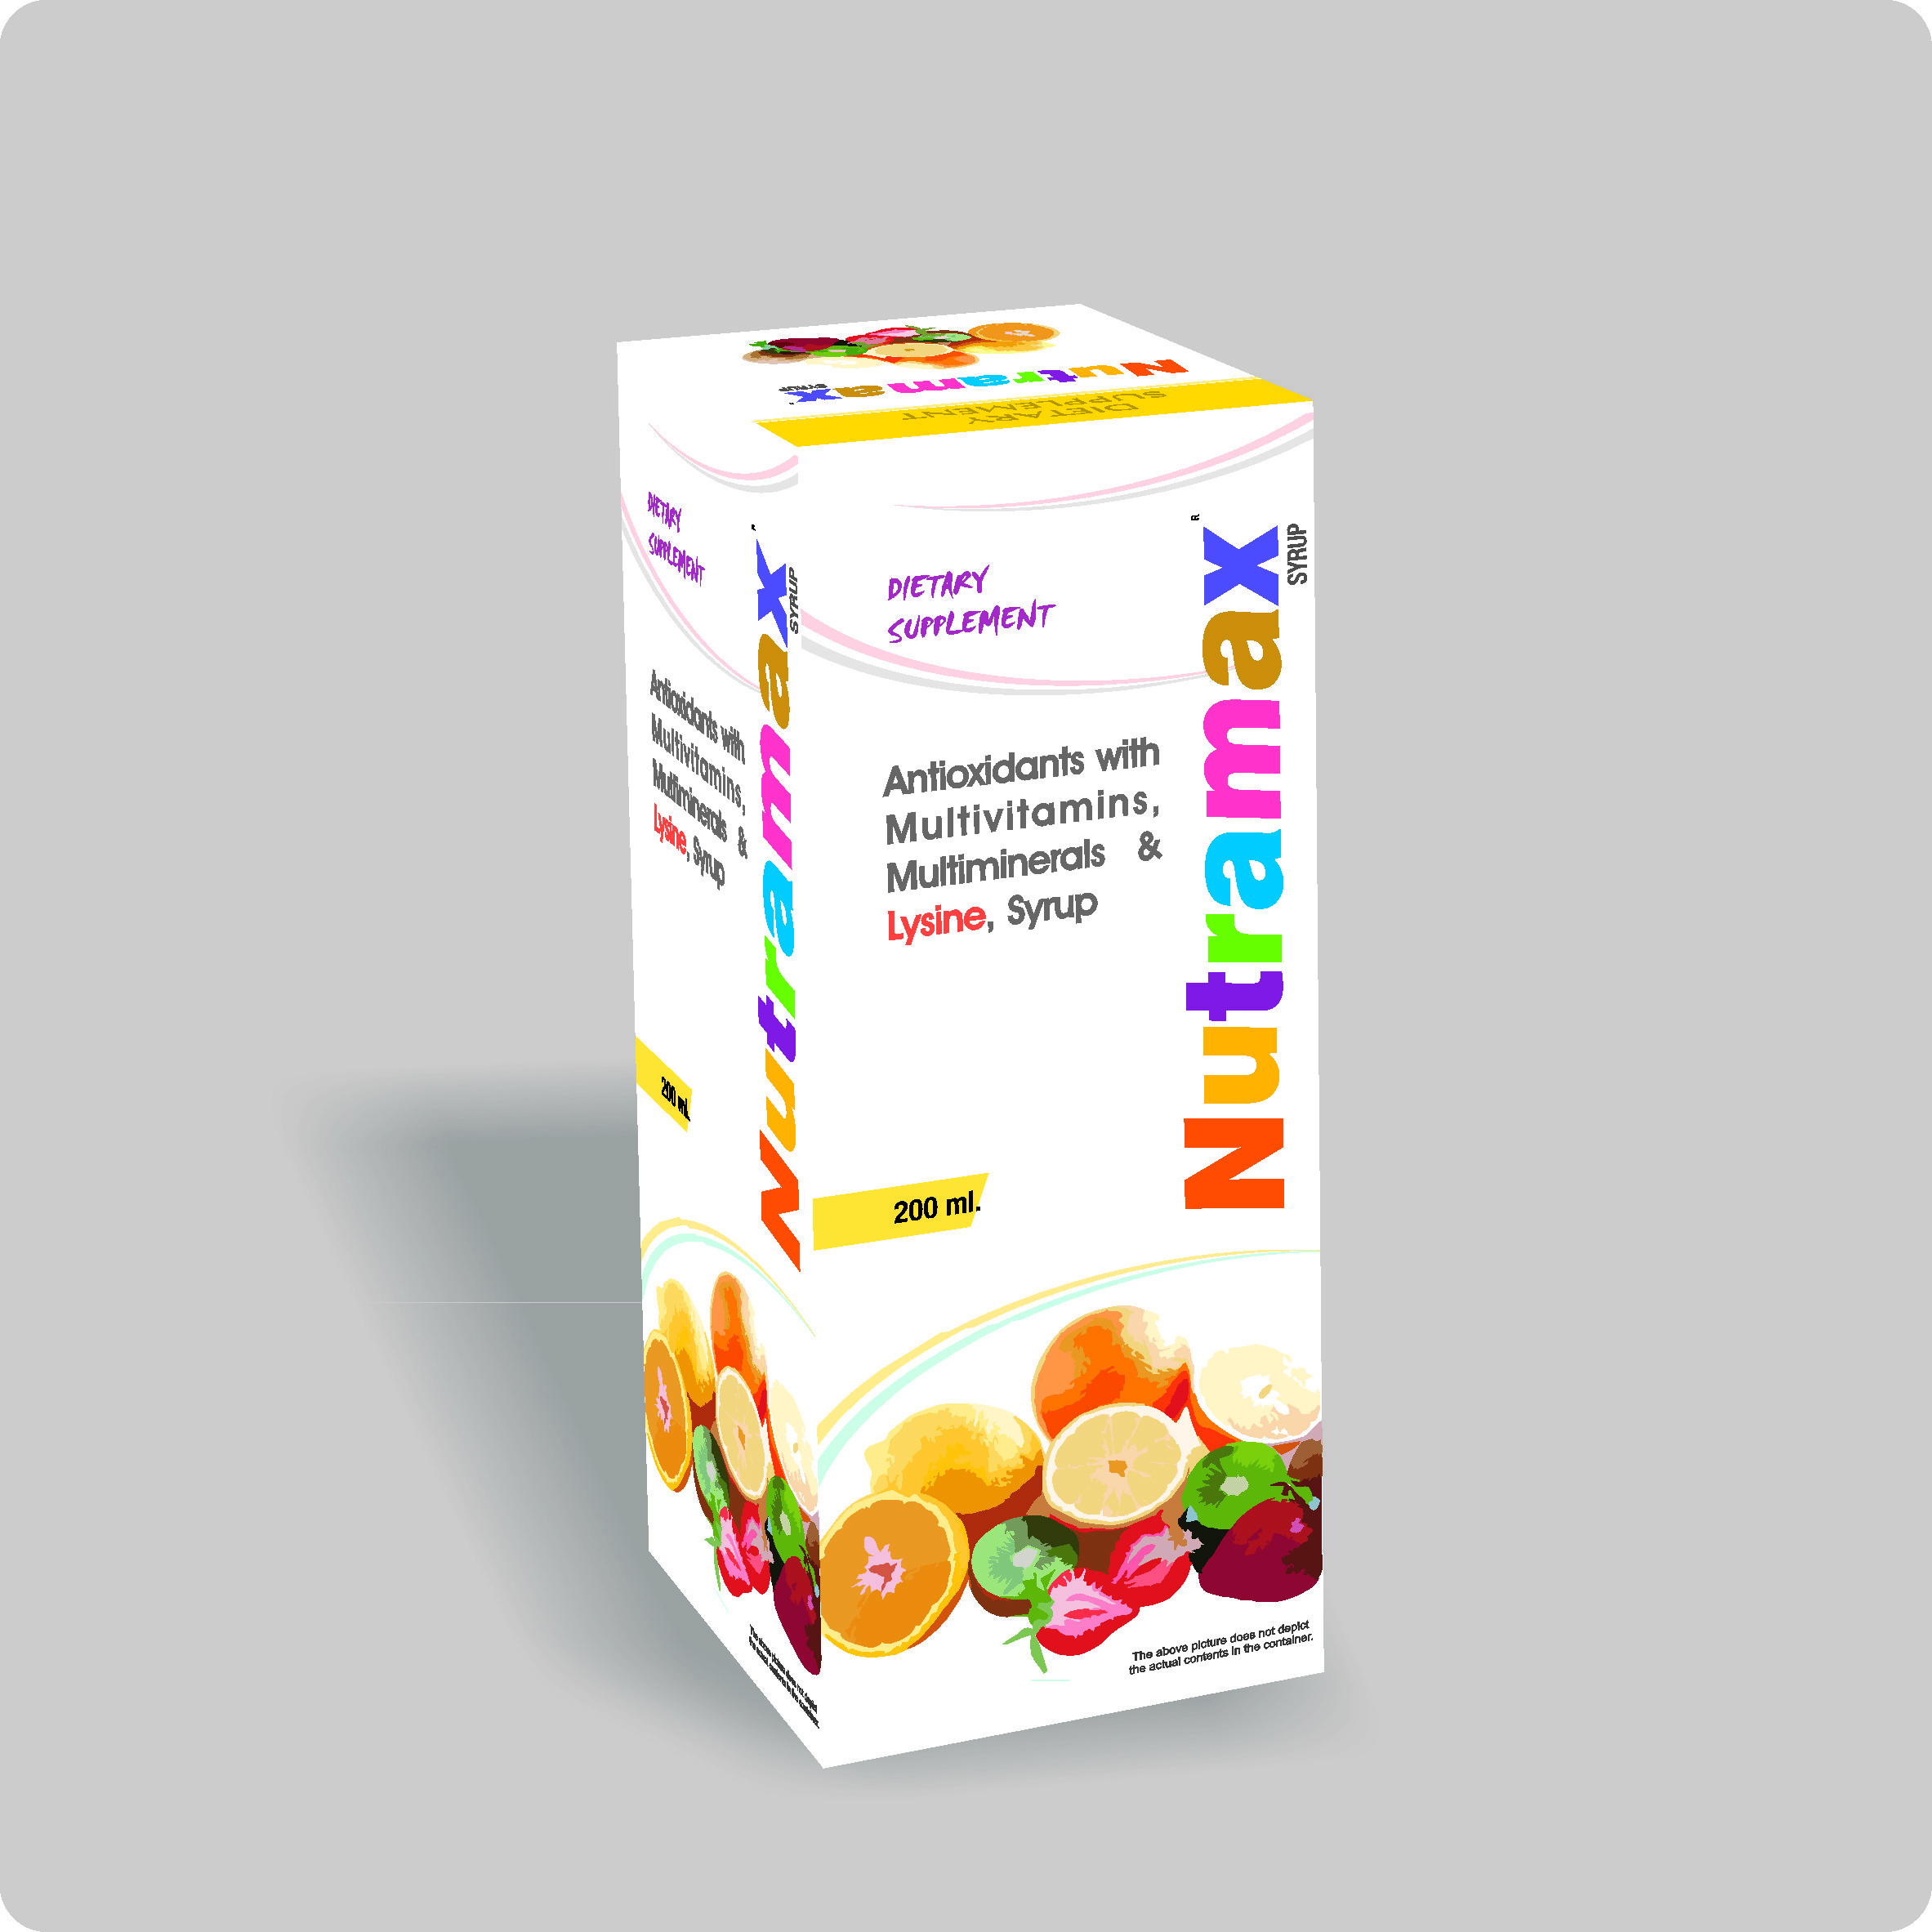 Antioxidants with Multivitamins